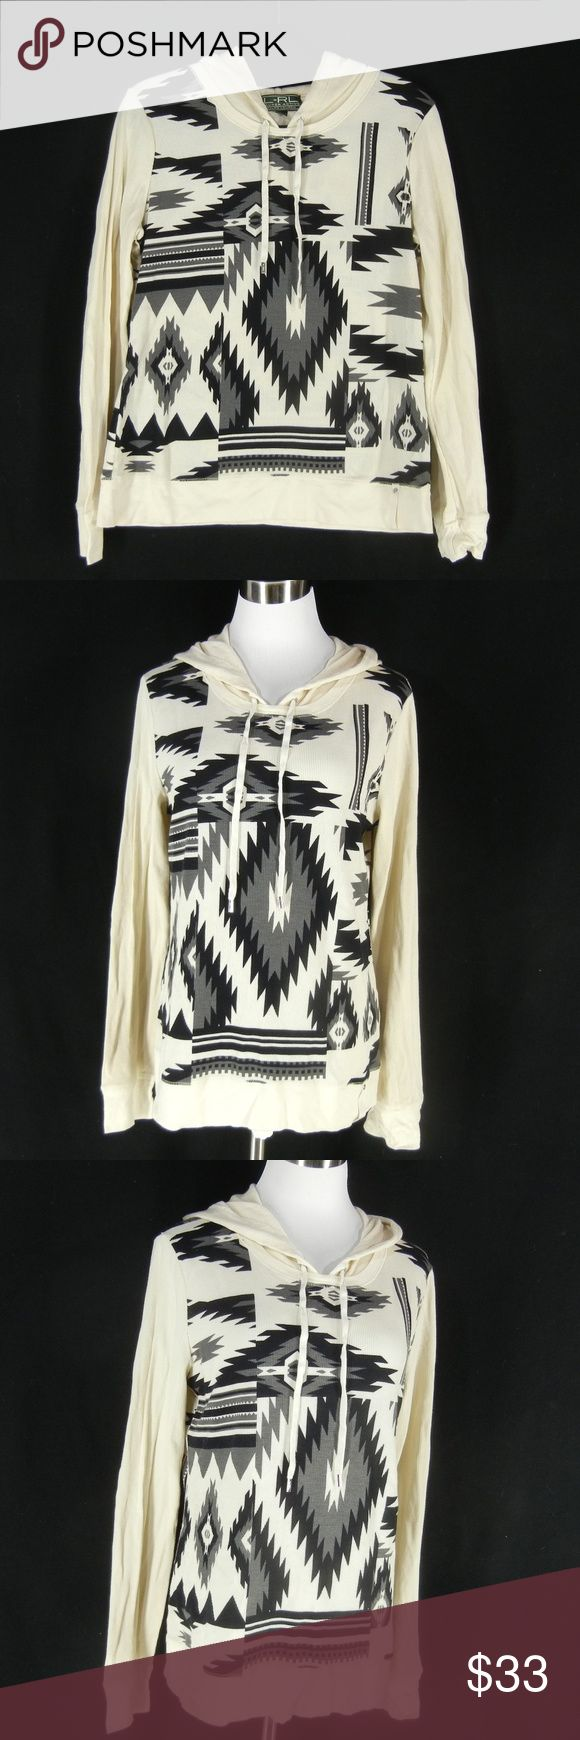 "RALPH LAUREN Aztec Southwest Print Shirt Top XL Ho RALPH LAUREN 100% cotton thermal waffle knit hooded top.  Dramatic southwestern print, attached hood with drawstring, long sleeves, no pockets.  Excellent condition with no noted flaws.  Machine wash.  Tagged Size XL, slim fit, please check measurements to determine fit.  40"" chest, 36"" waist, 40"" hips, 25"" long. Ralph Lauren Tops"